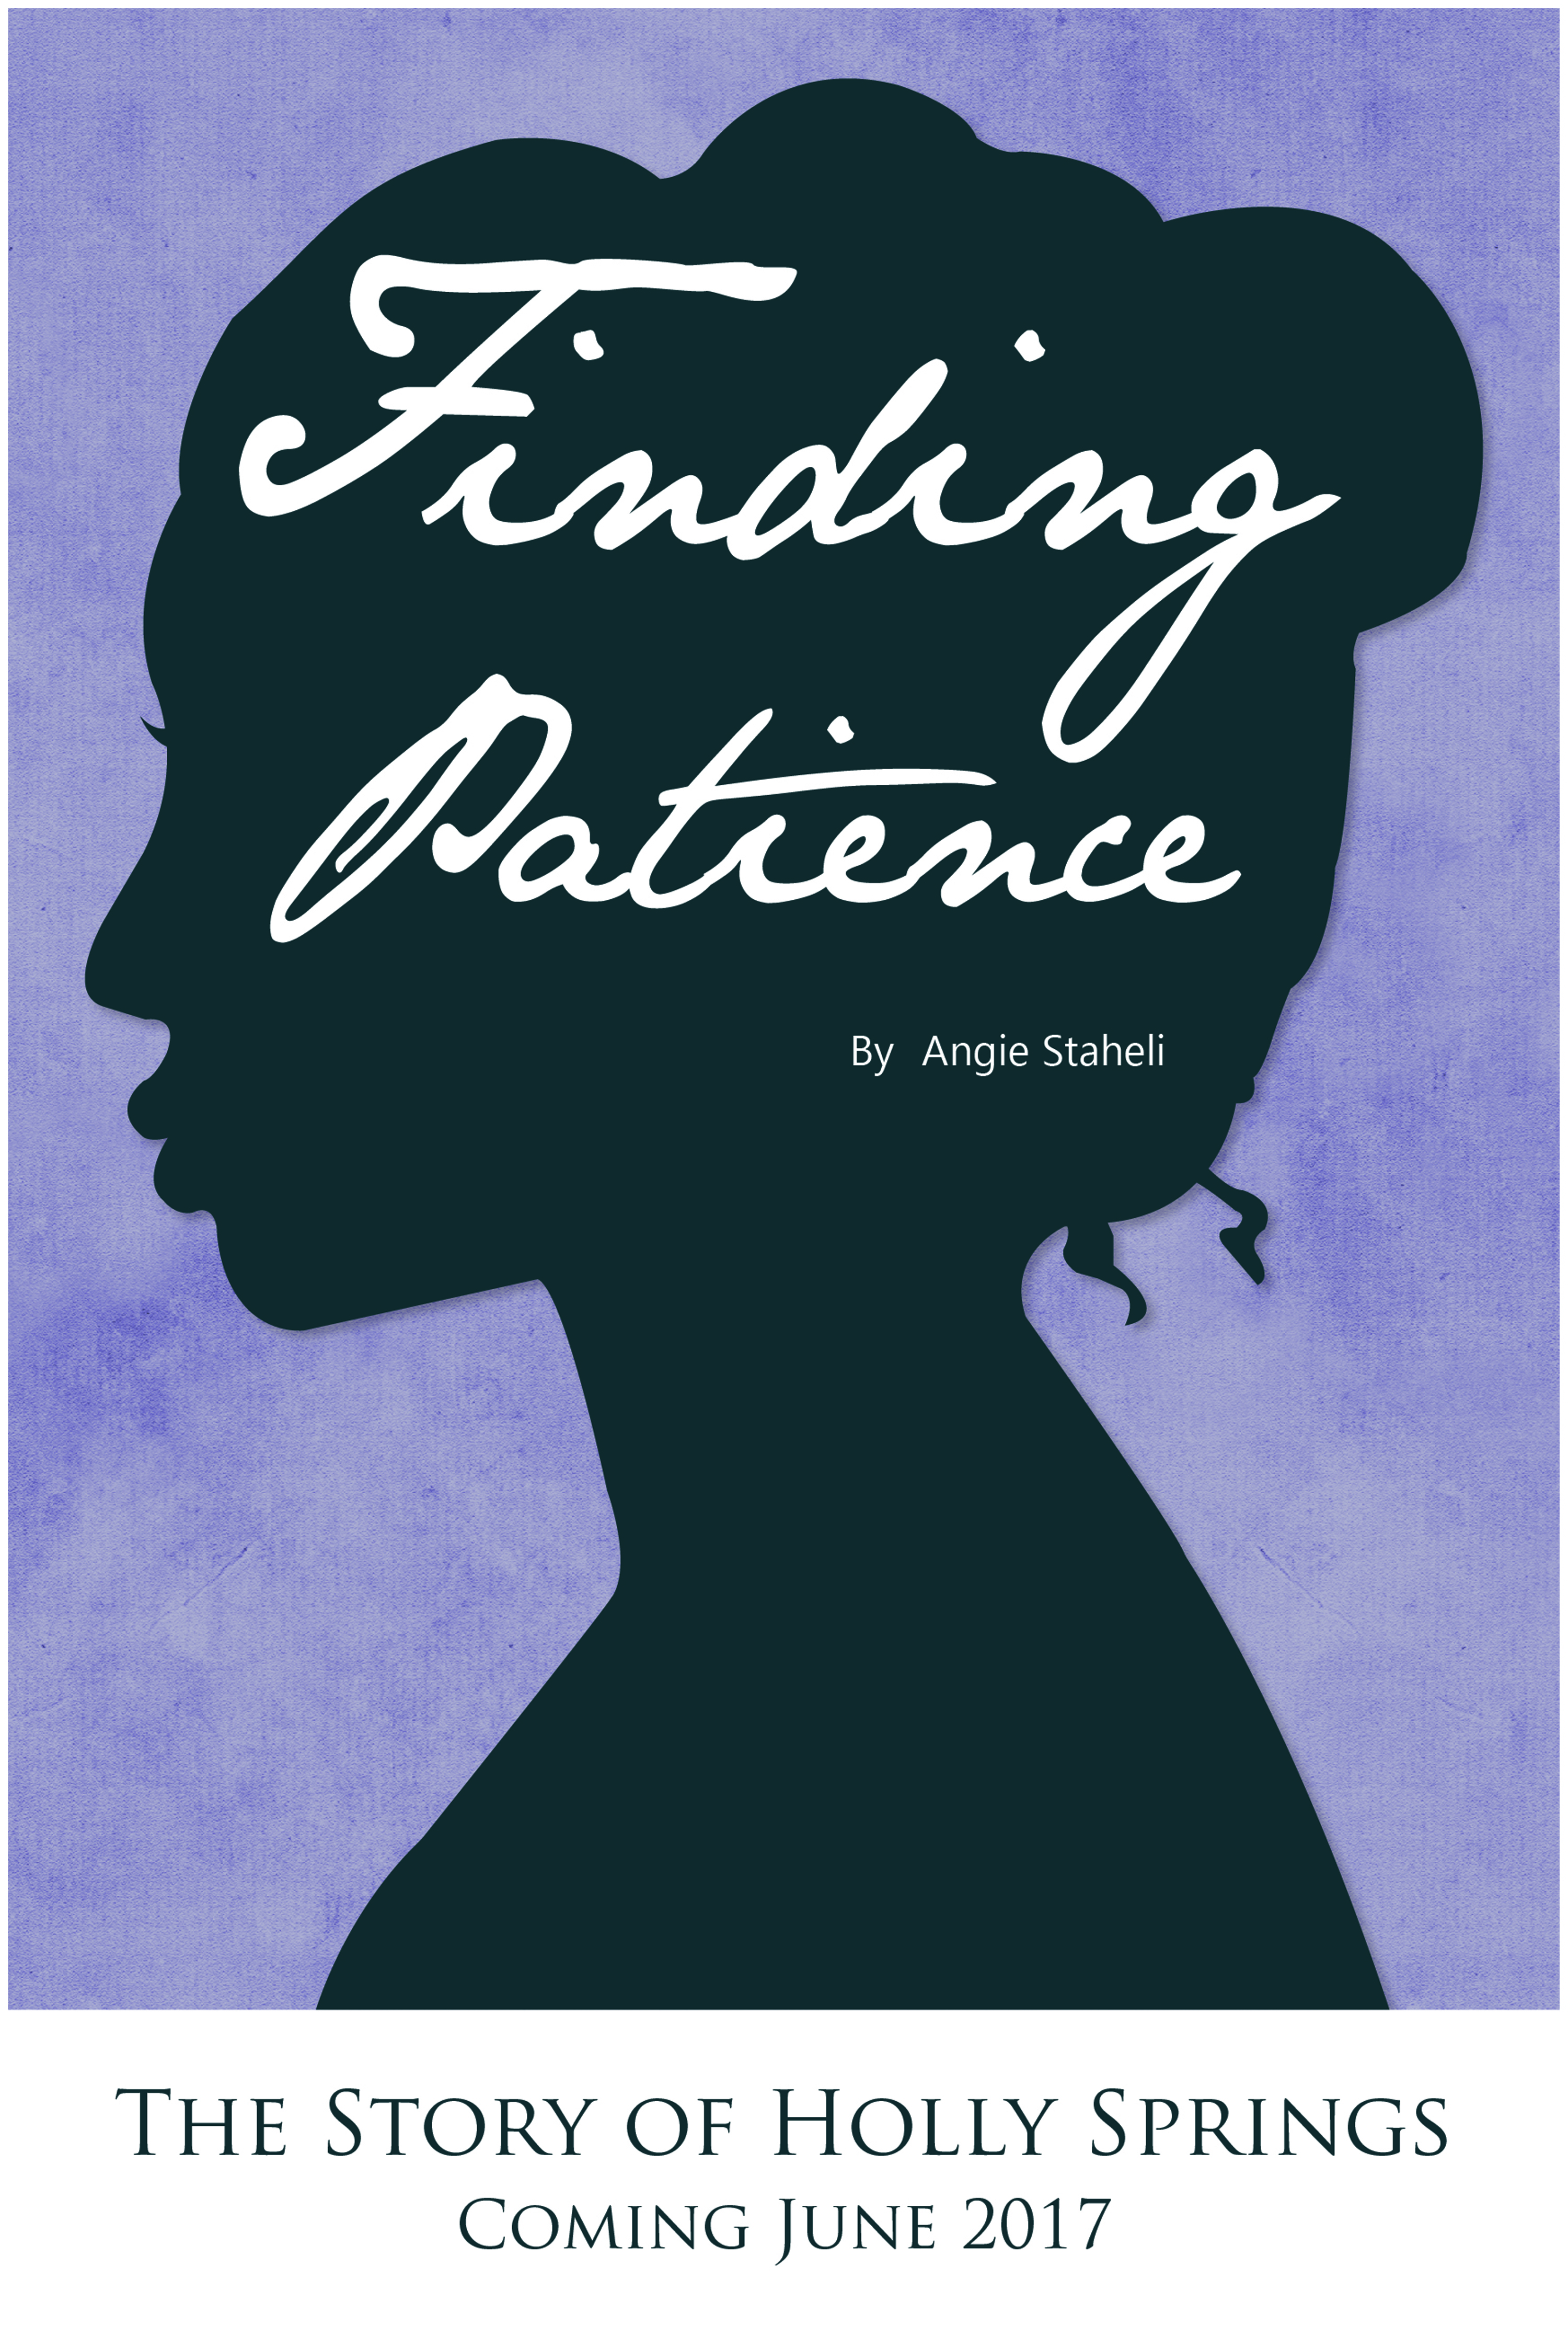 Meeting Angie, Finding Patience by Jennifer Dunsmore